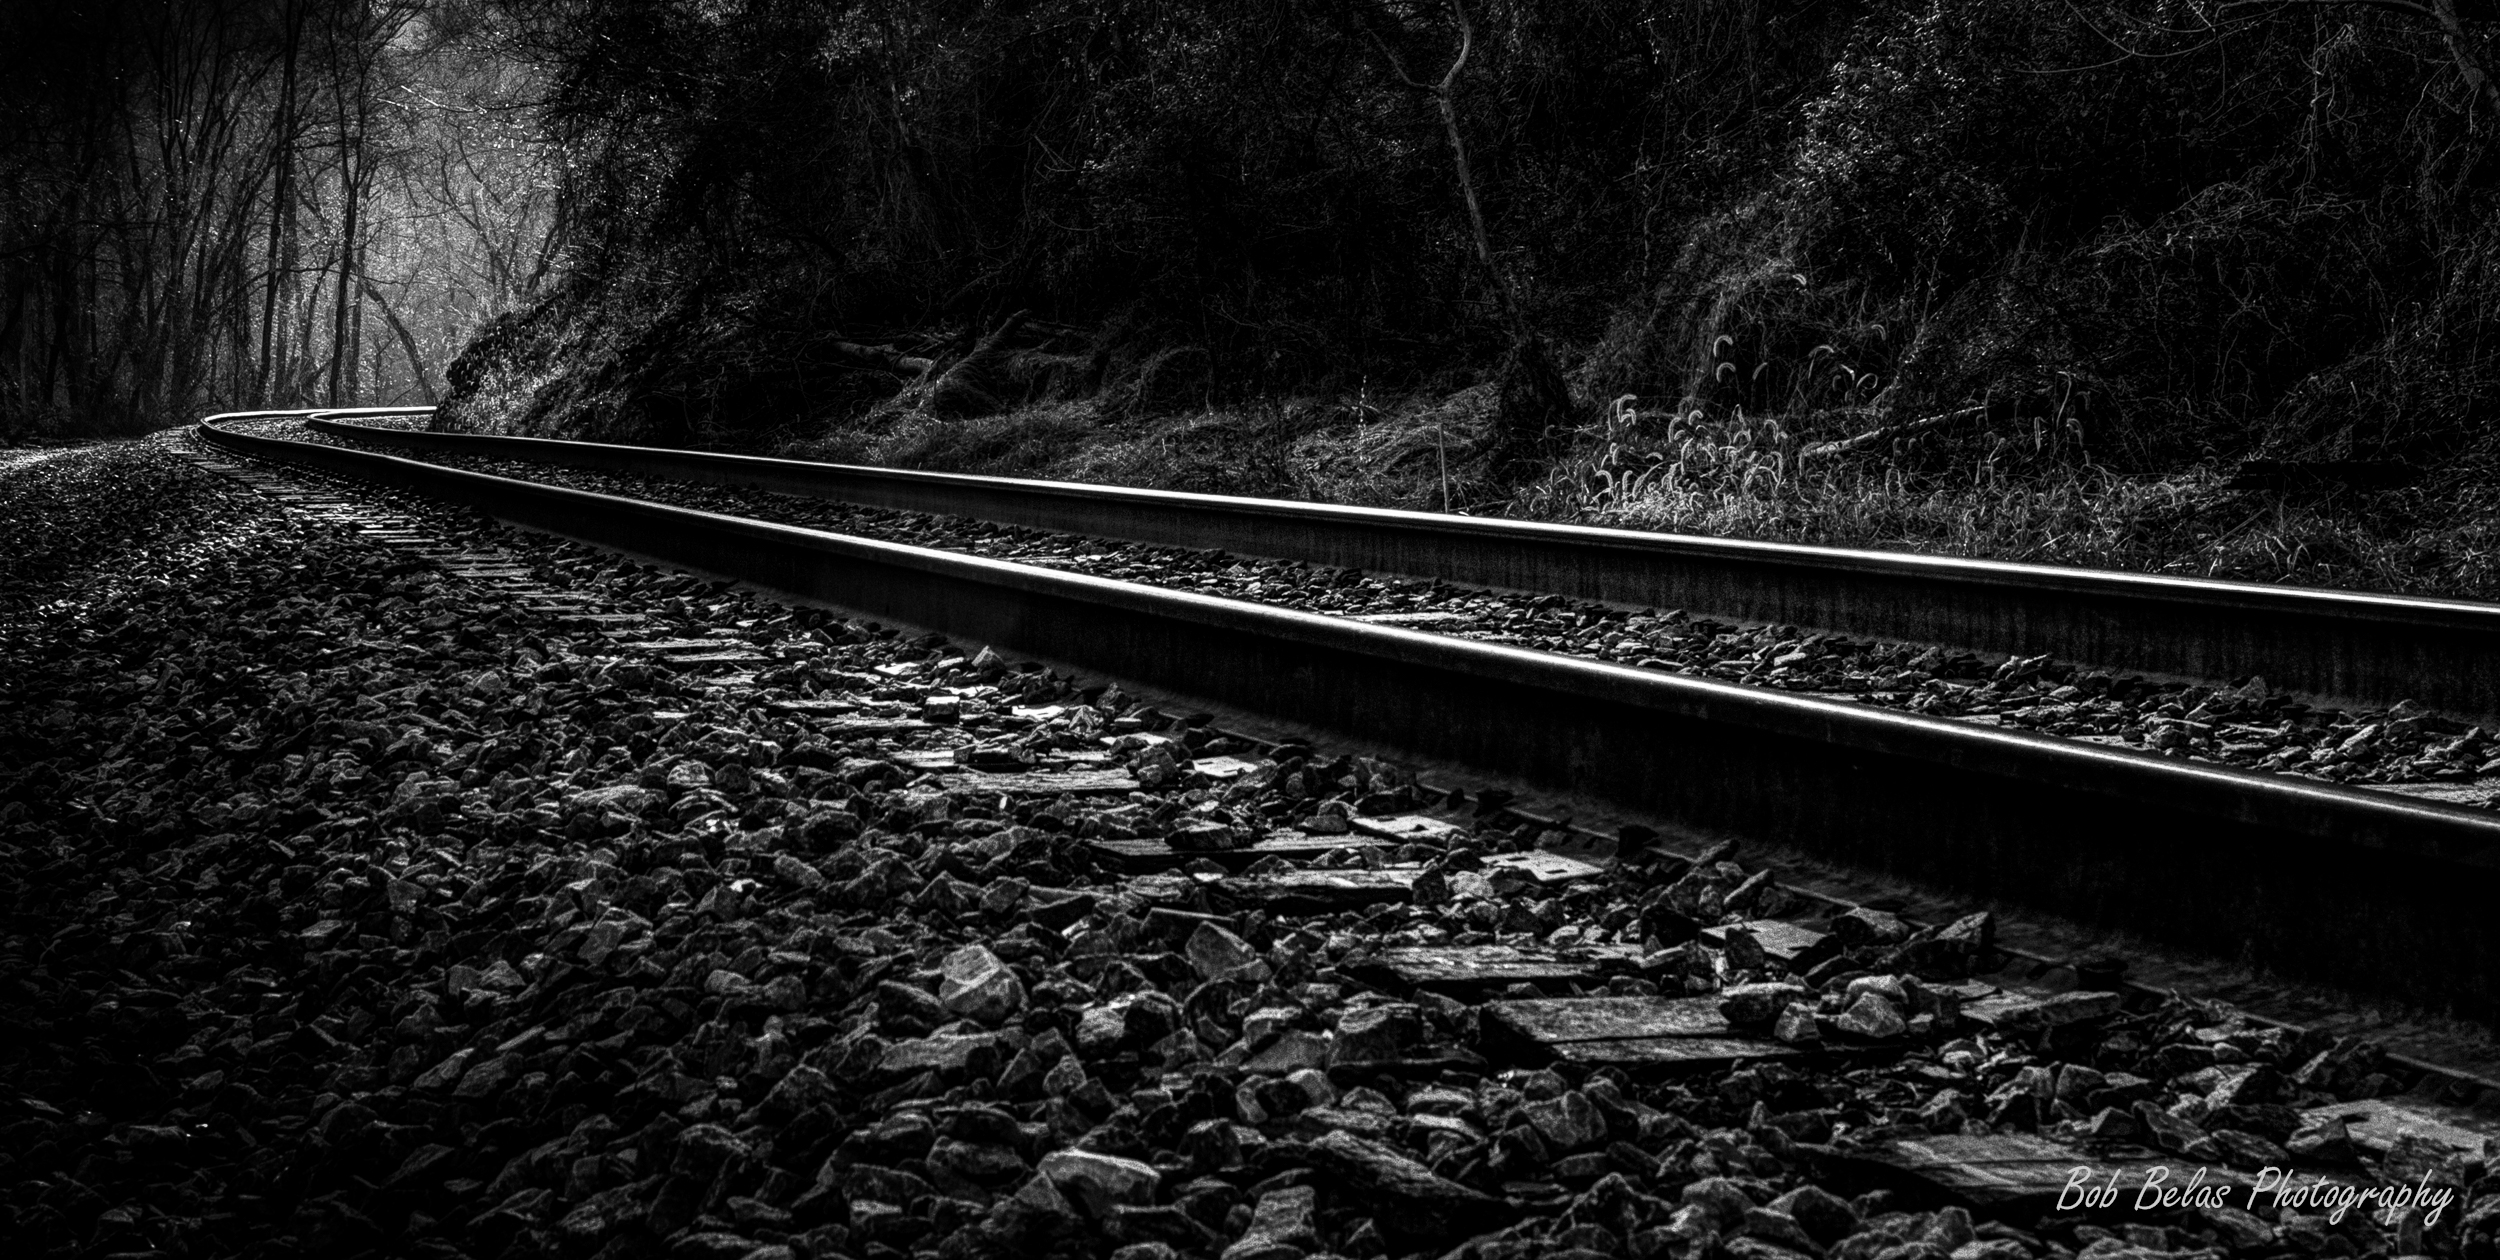 Hollofield Tracks, monochrome